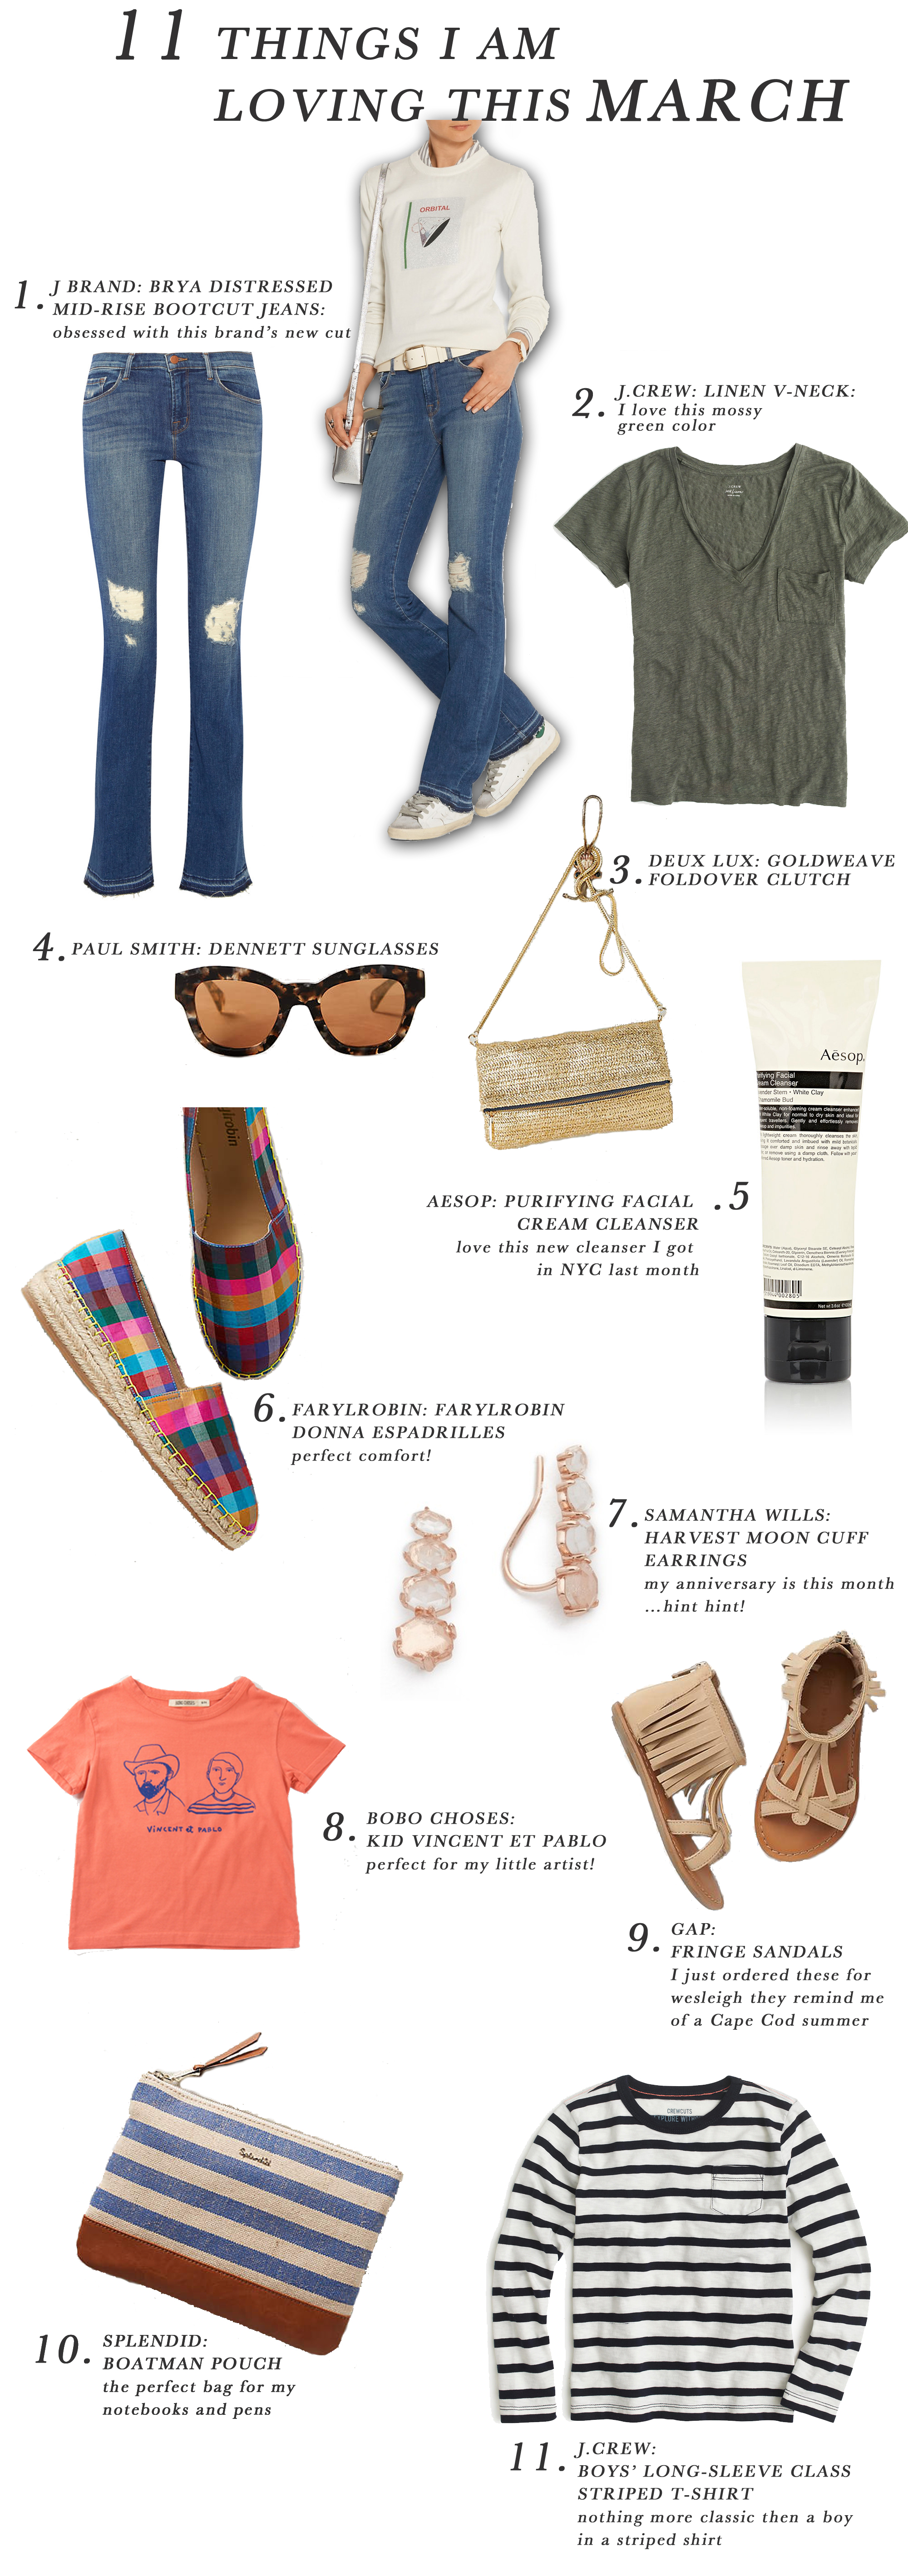 La Petite Peach_11 things I am loving this march